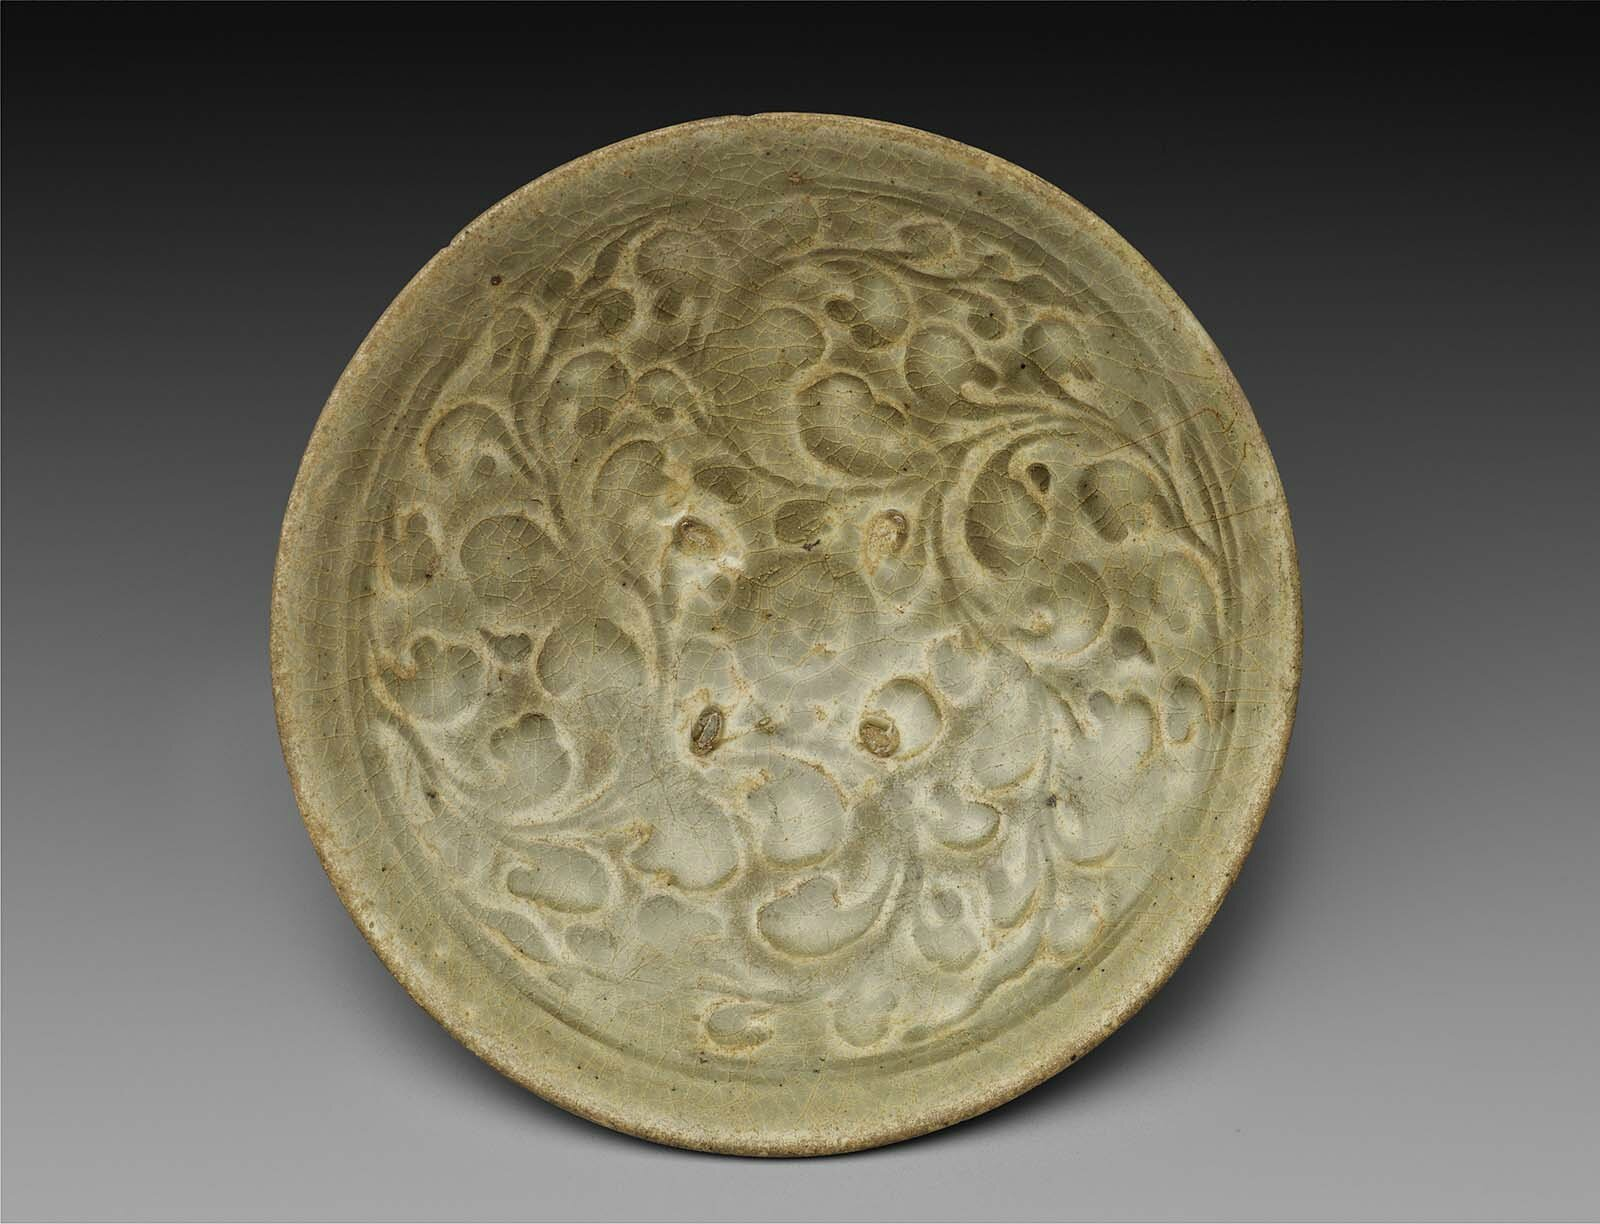 Dish, Vietnam, Ly-Tran Dynasty, 12th–14th century